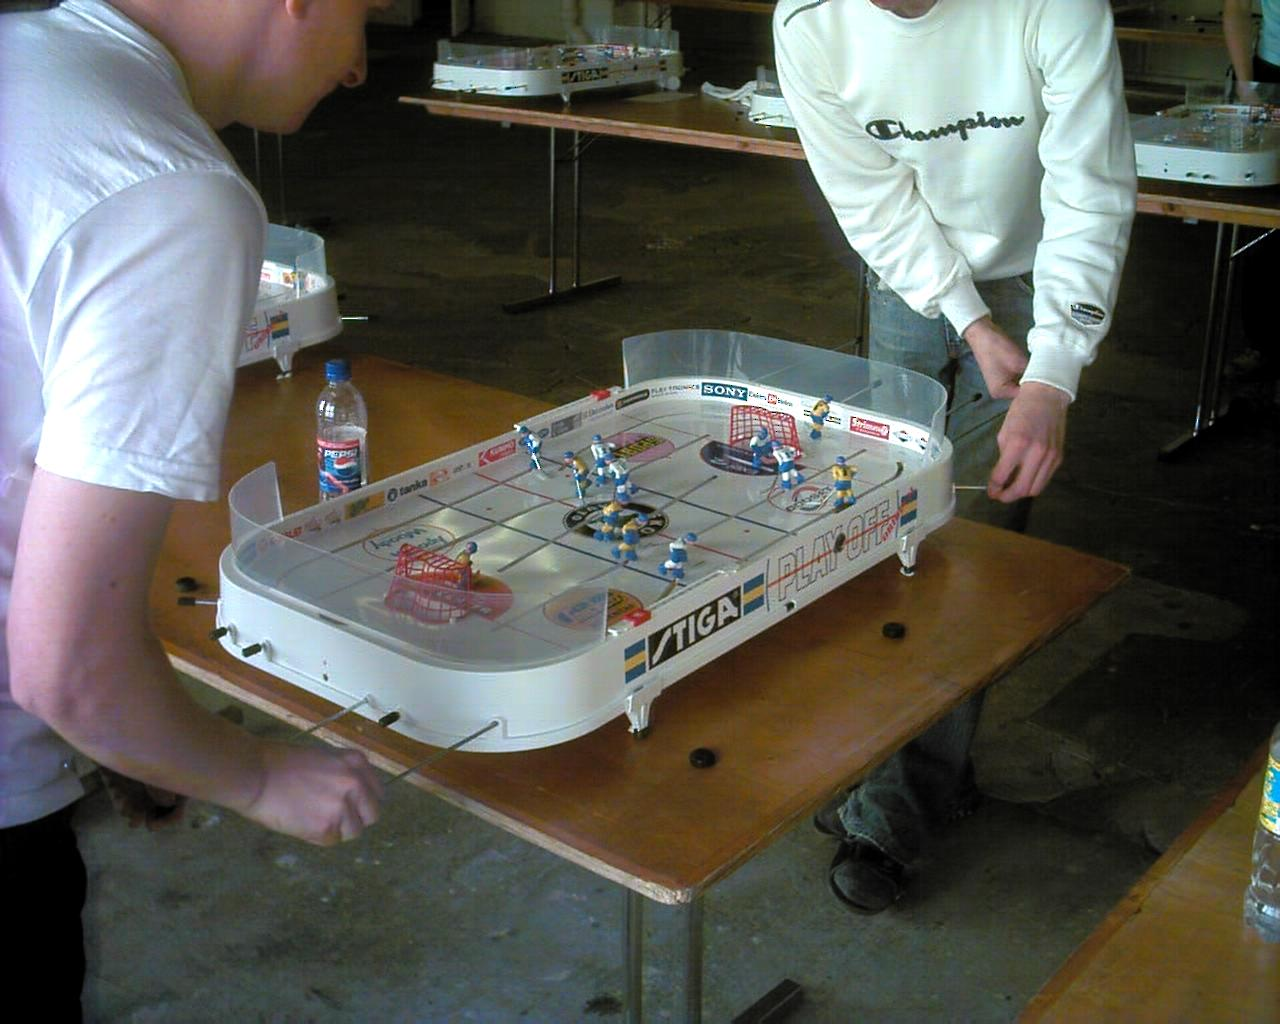 Two men playing a game of Table Hockey